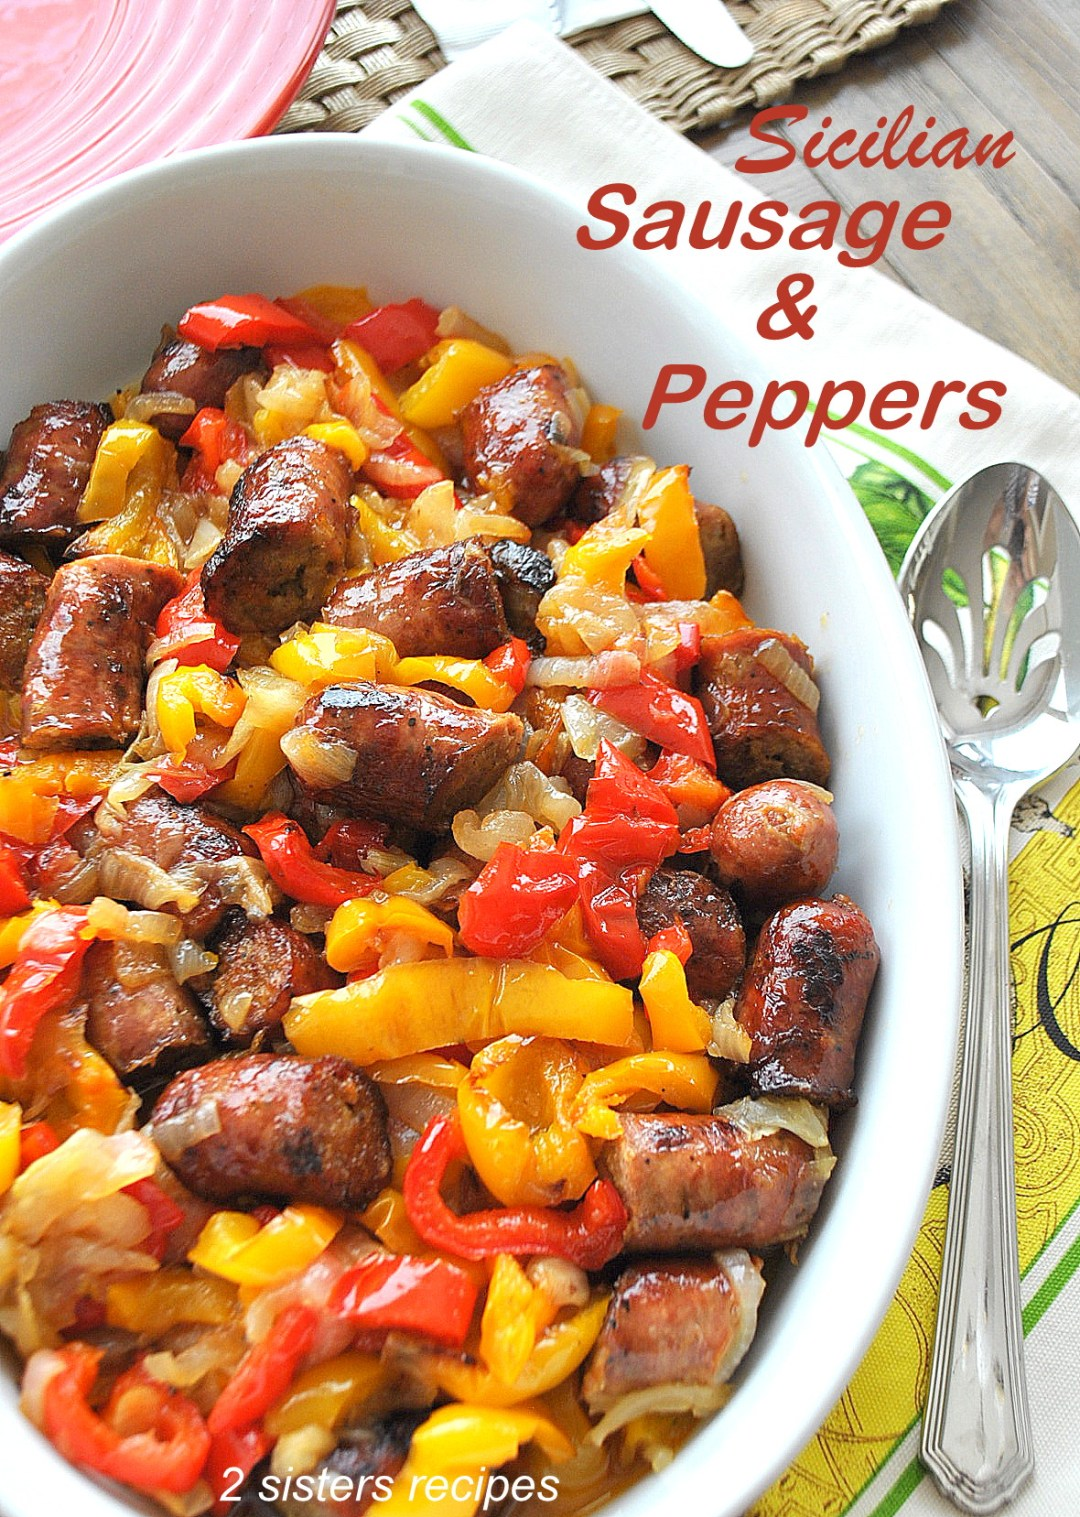 Sicilian Sausage and Peppers by 2sistersrecipes.com